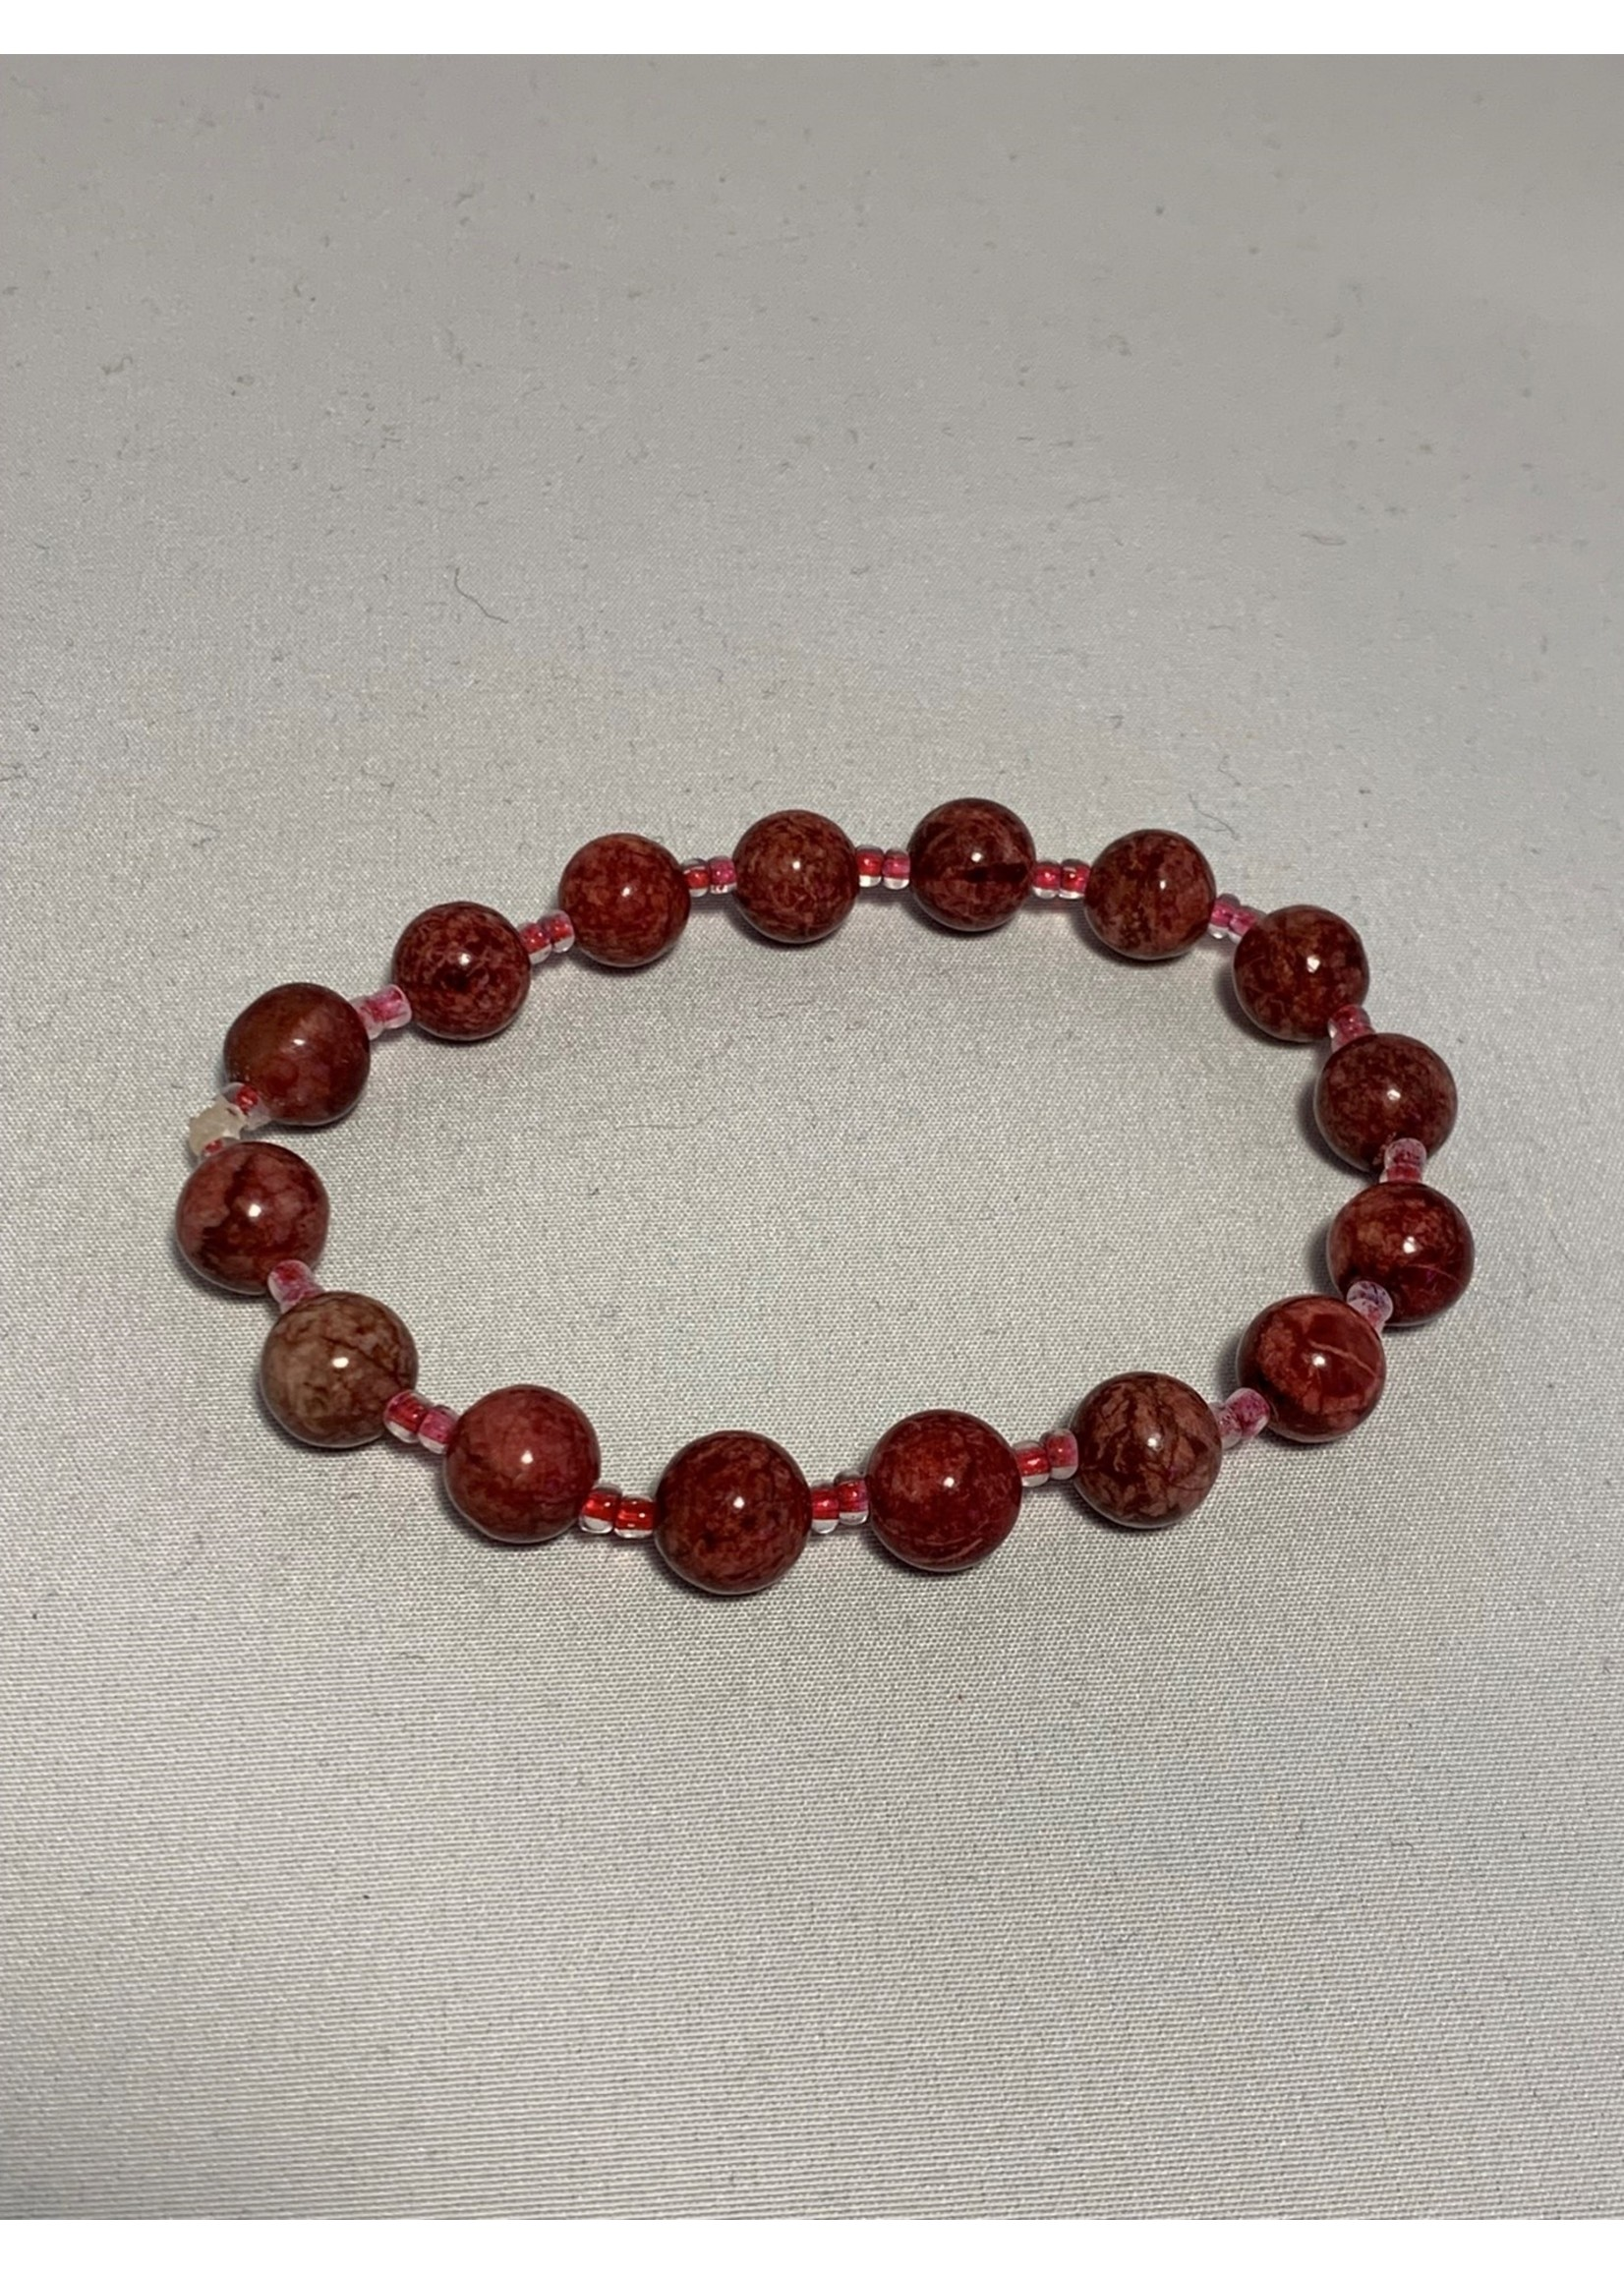 Stretch Bracelet Red Howlite with Clear Lined Red Beads